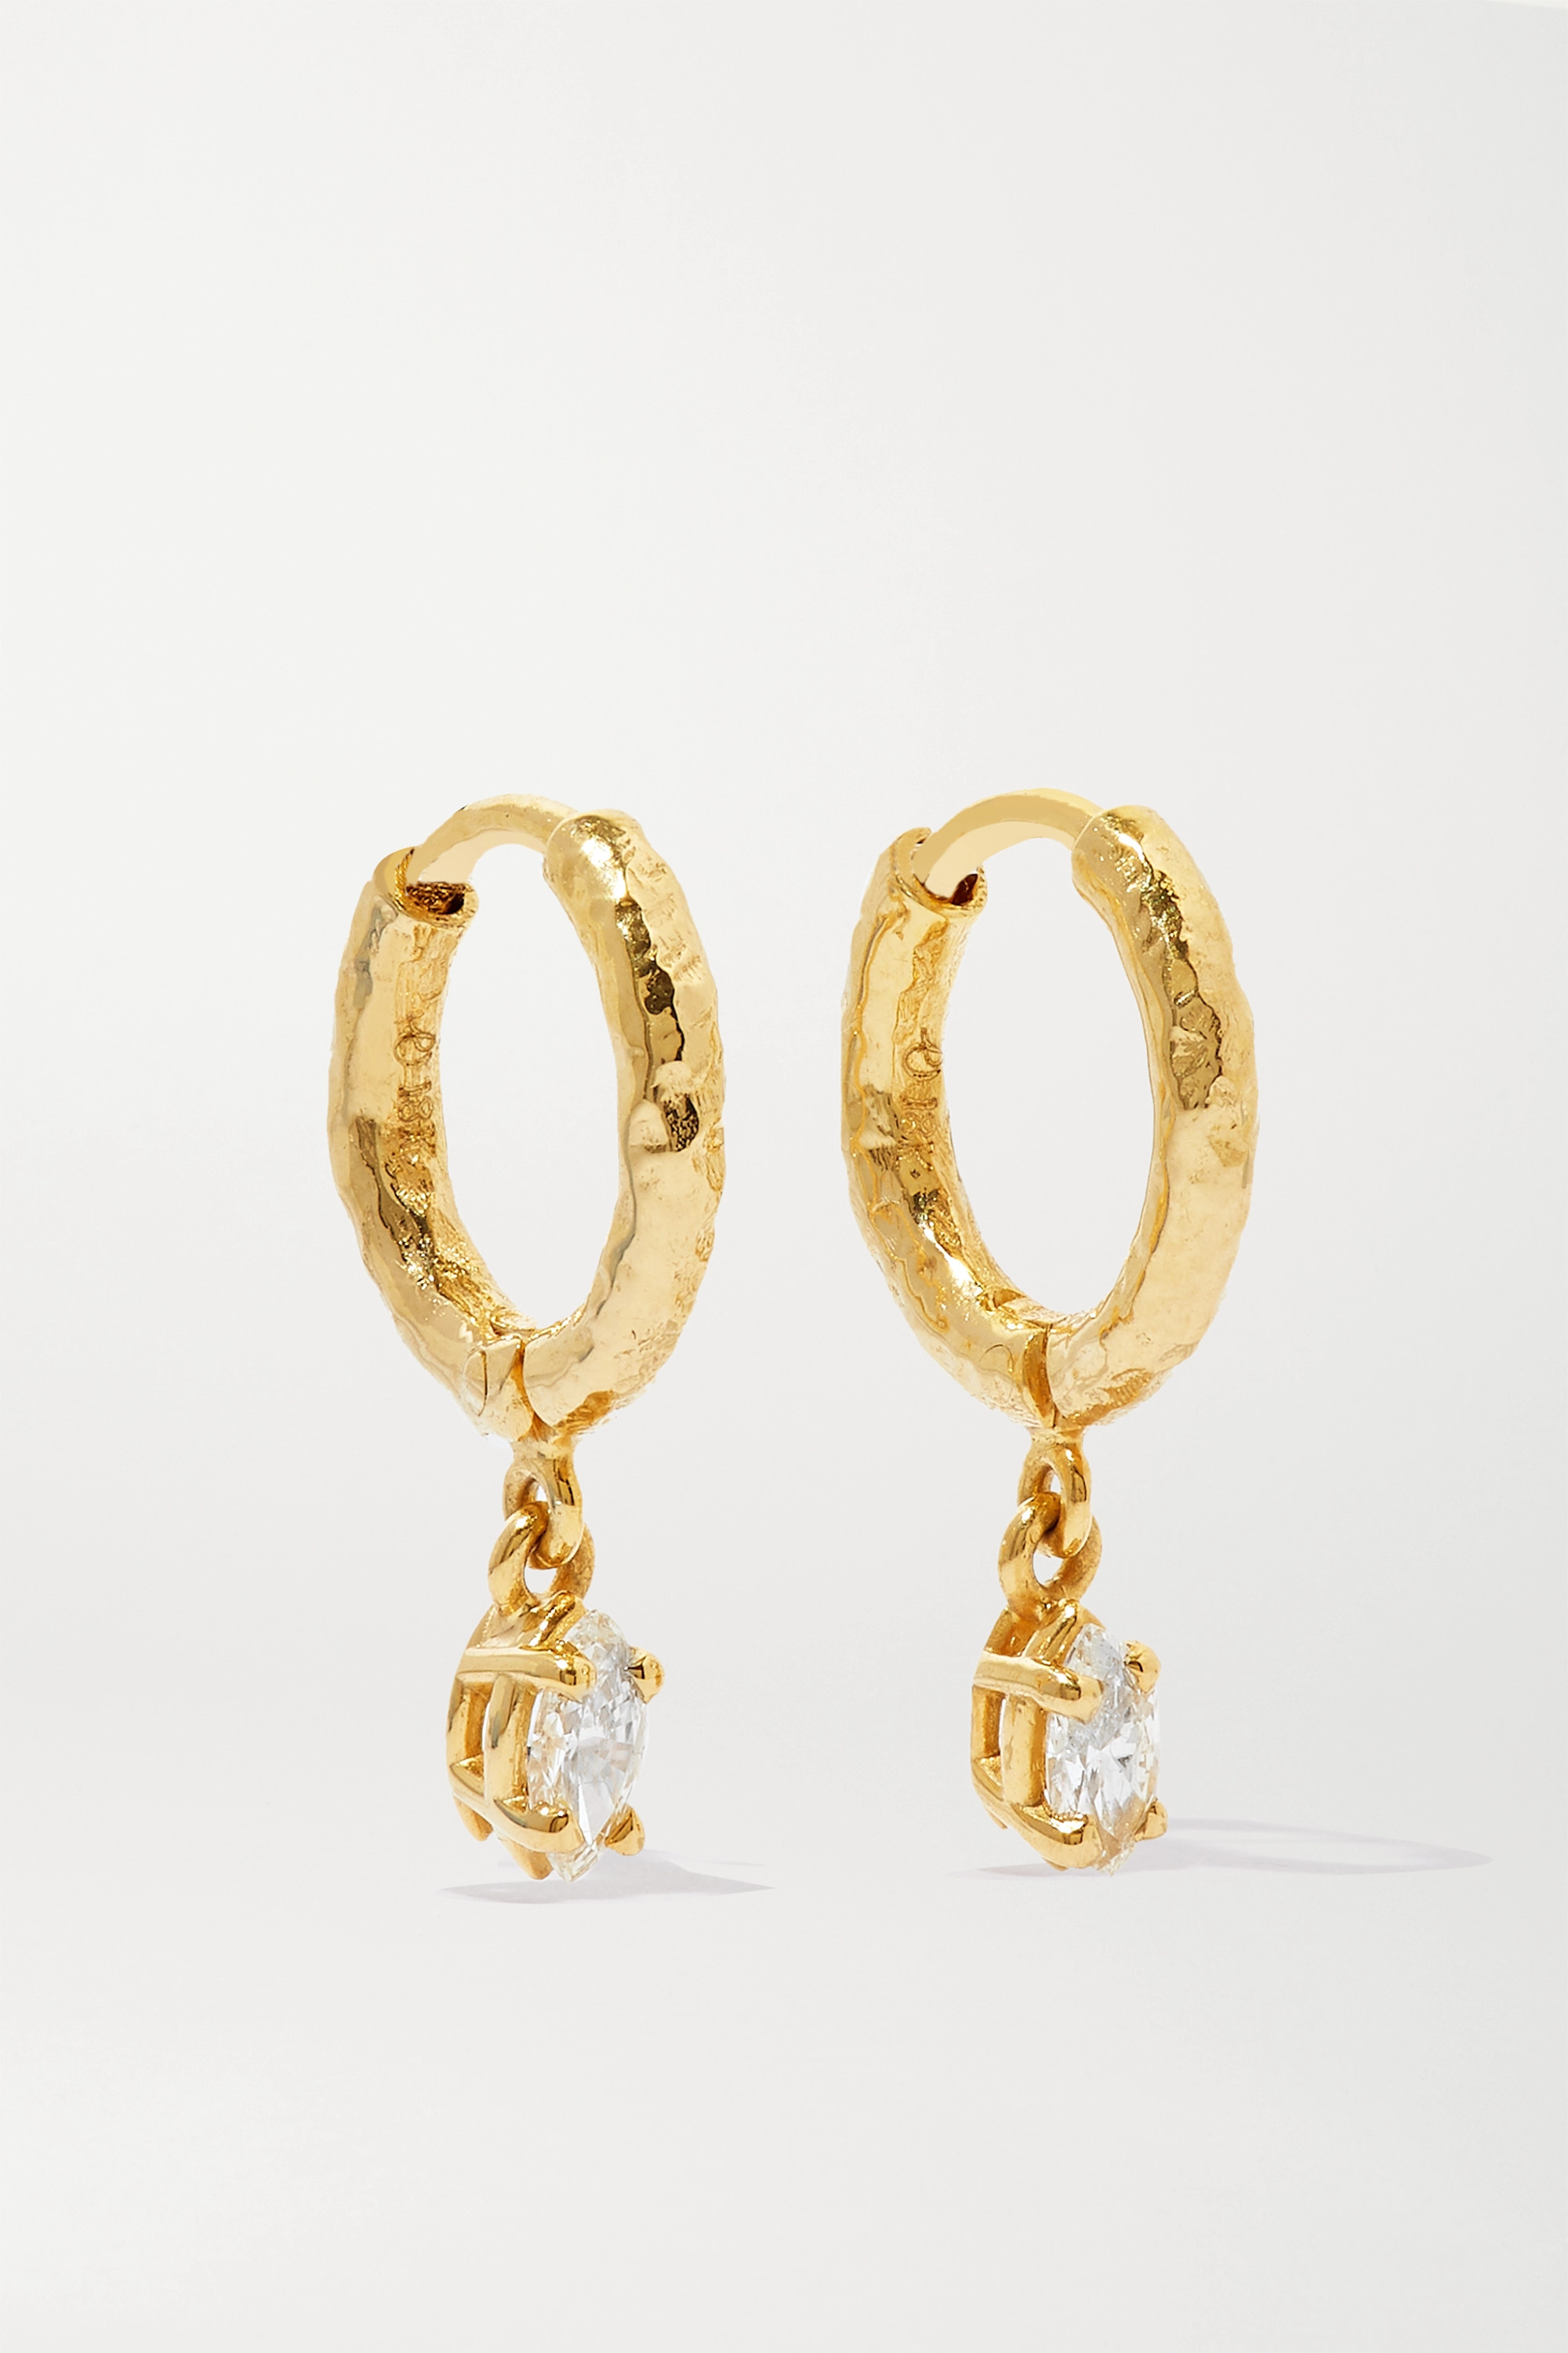 OCTAVIA ELIZABETH + NET SUSTAIN Micro Gabby 18-karat recycled gold diamond hoop earrings